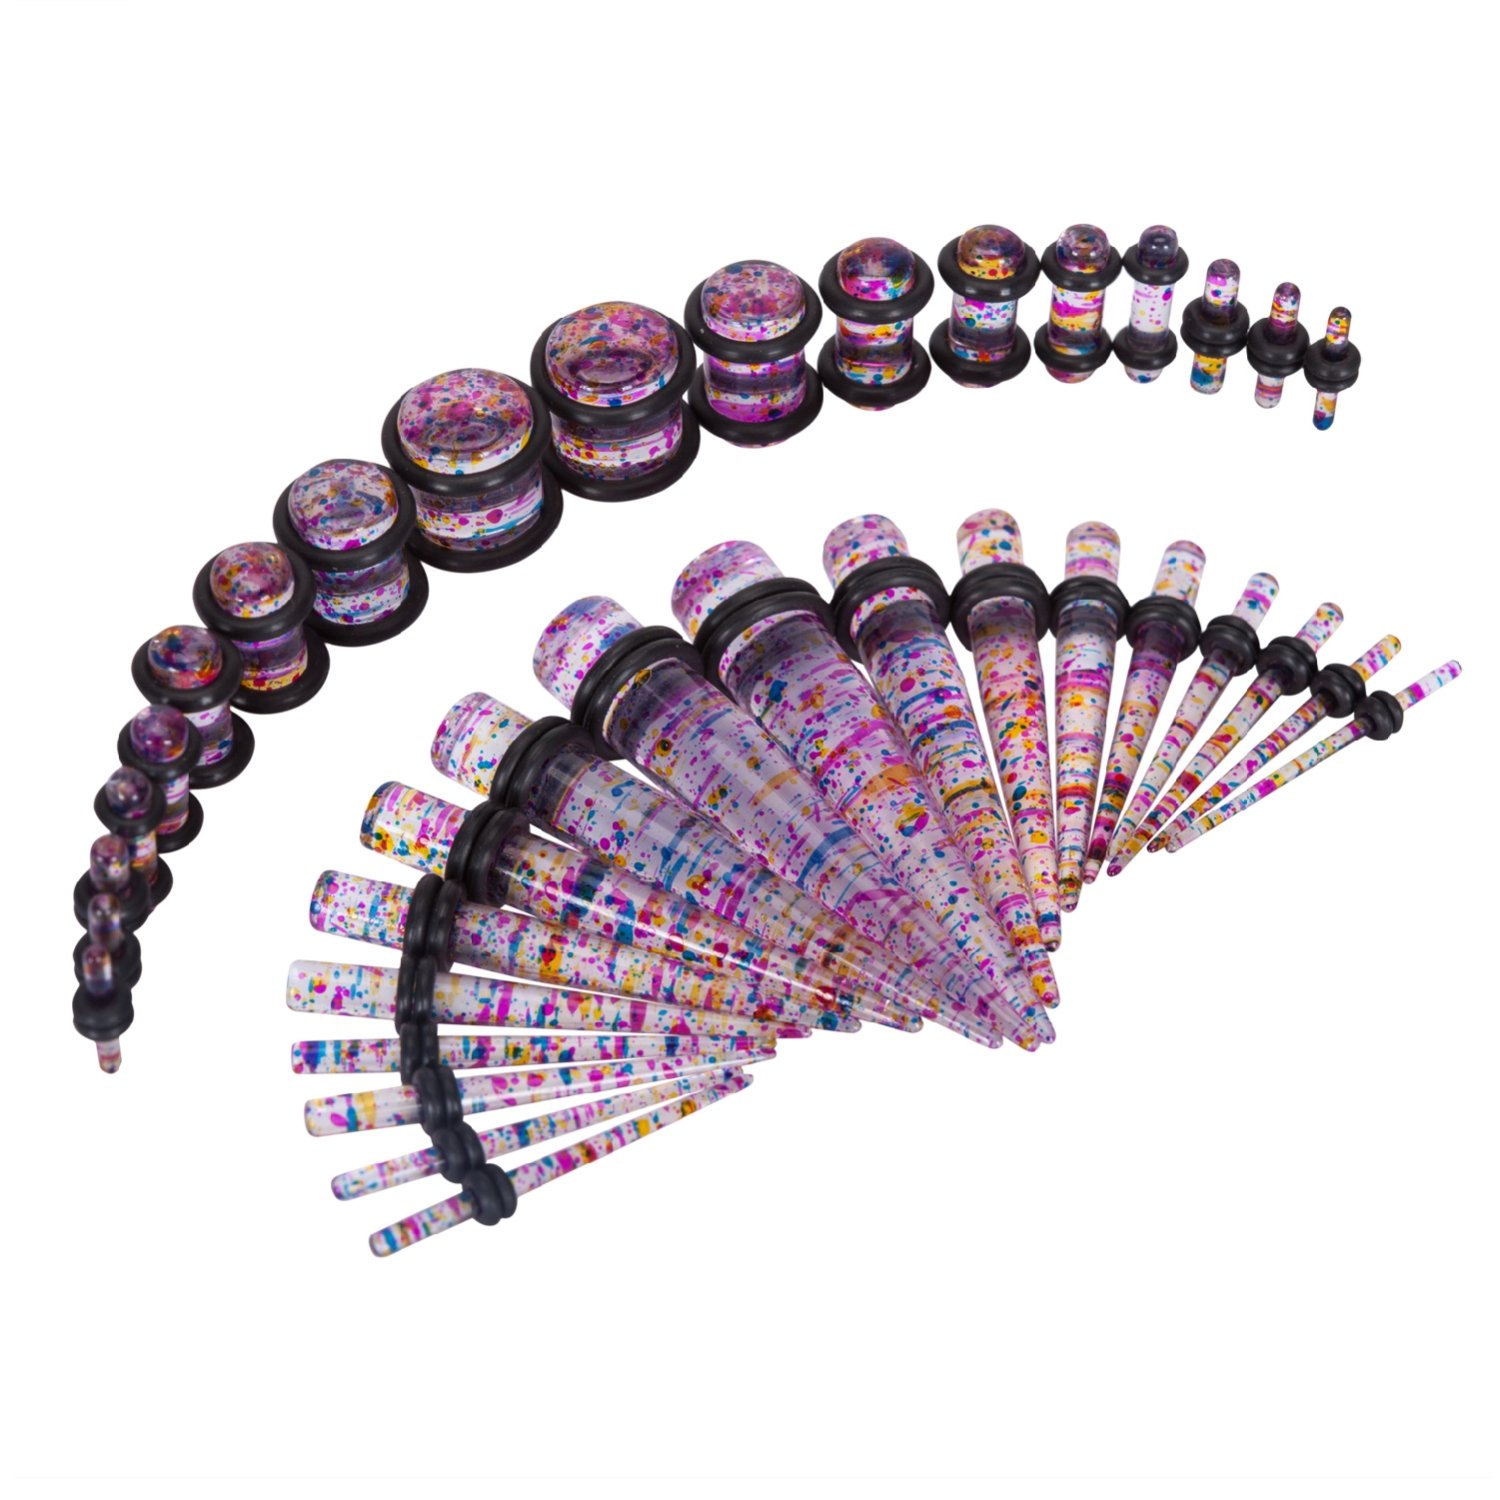 36 Pieces Taper Kit Glitter Rainbow Tapers with Glitter Rainbow Plugs Sparkle Stretching Kit - 18 Pairs BodyJ4You GK0176-RB